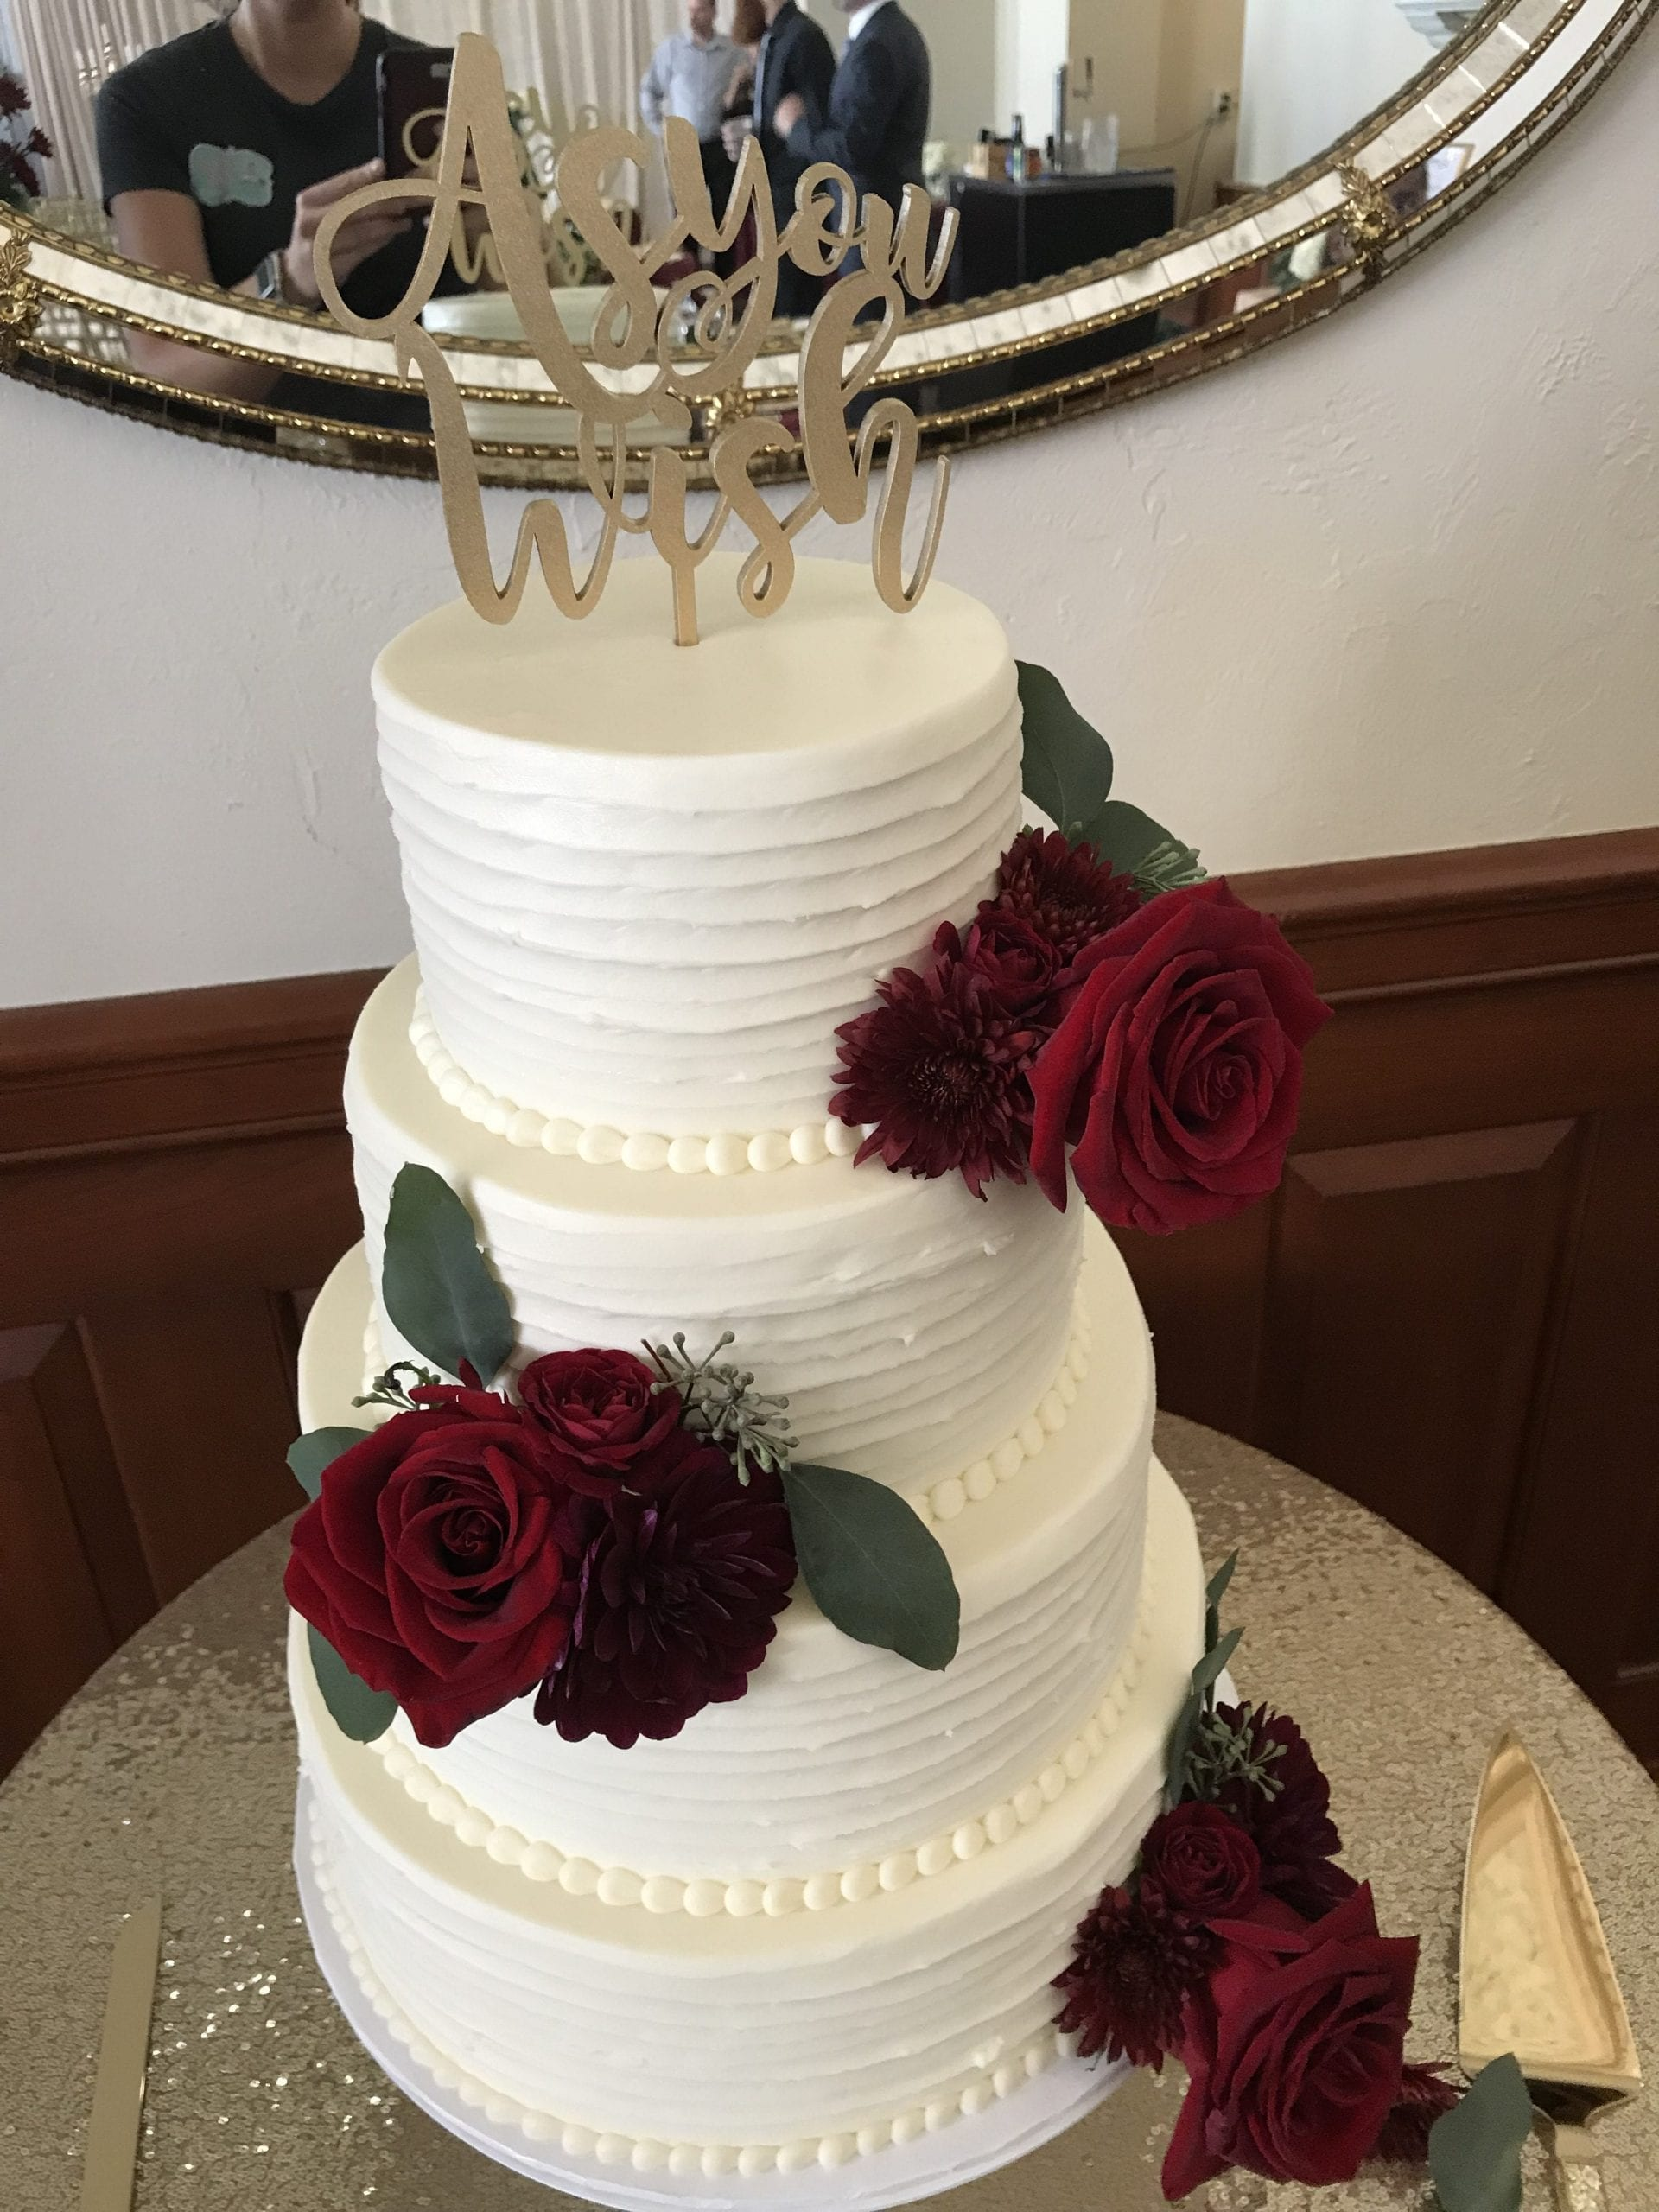 Rustic 4 Tier Wedding Cake with Roses | 3 Sweet Girls Cakey